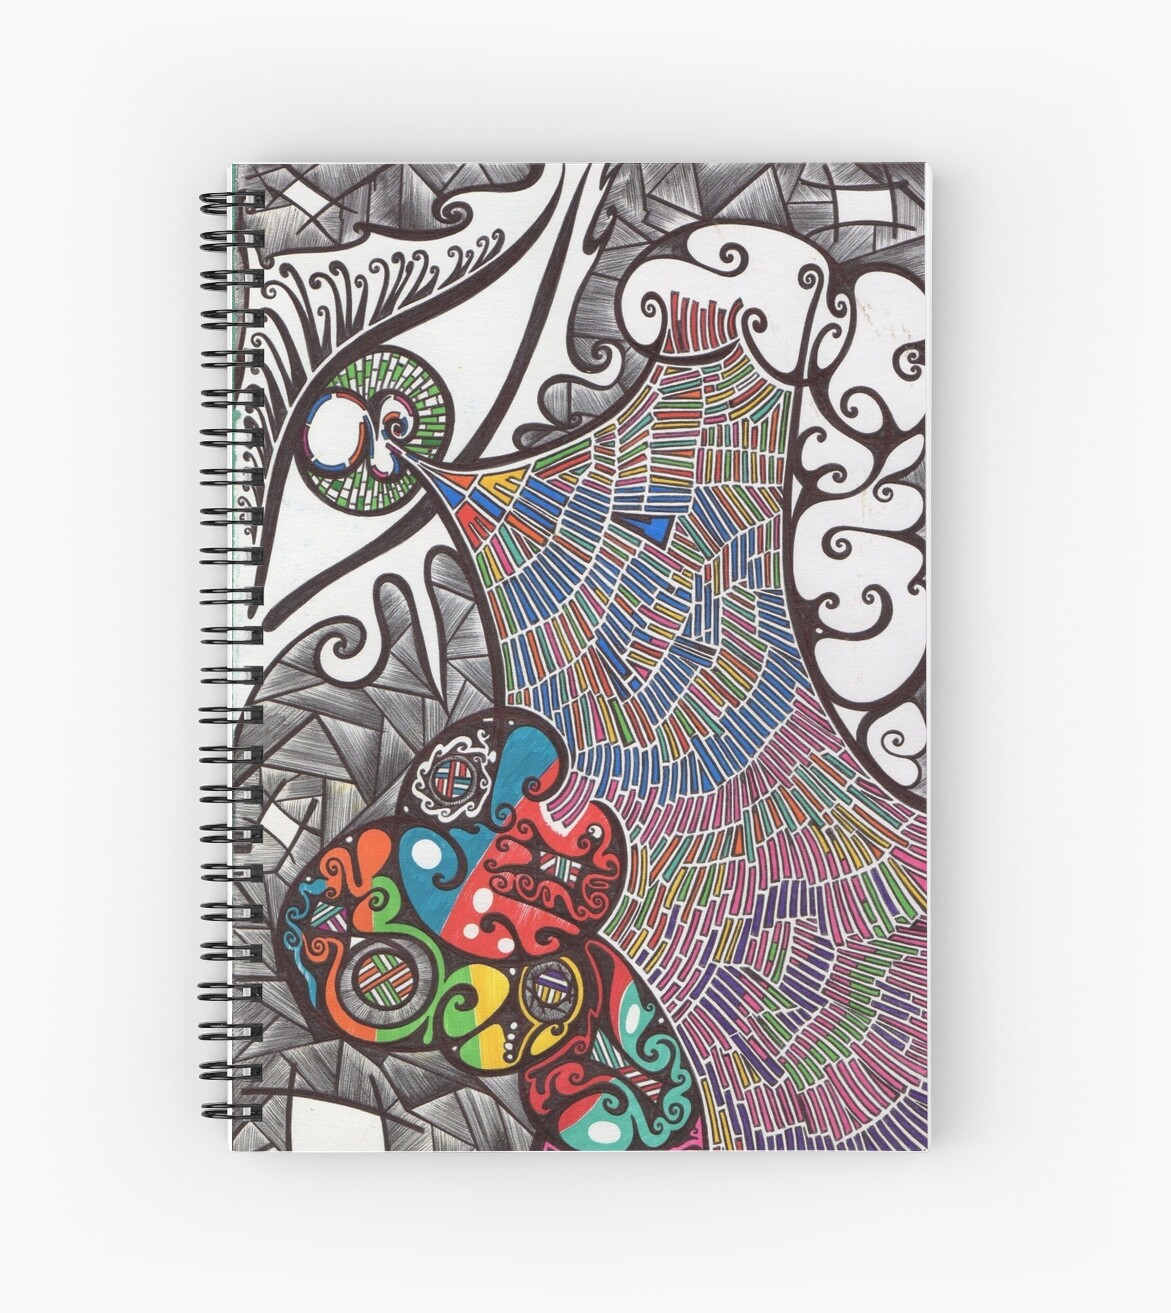 Eye Abstract Art Drawing Crazy Mind Spiral Notebook By Nuitpipistrela